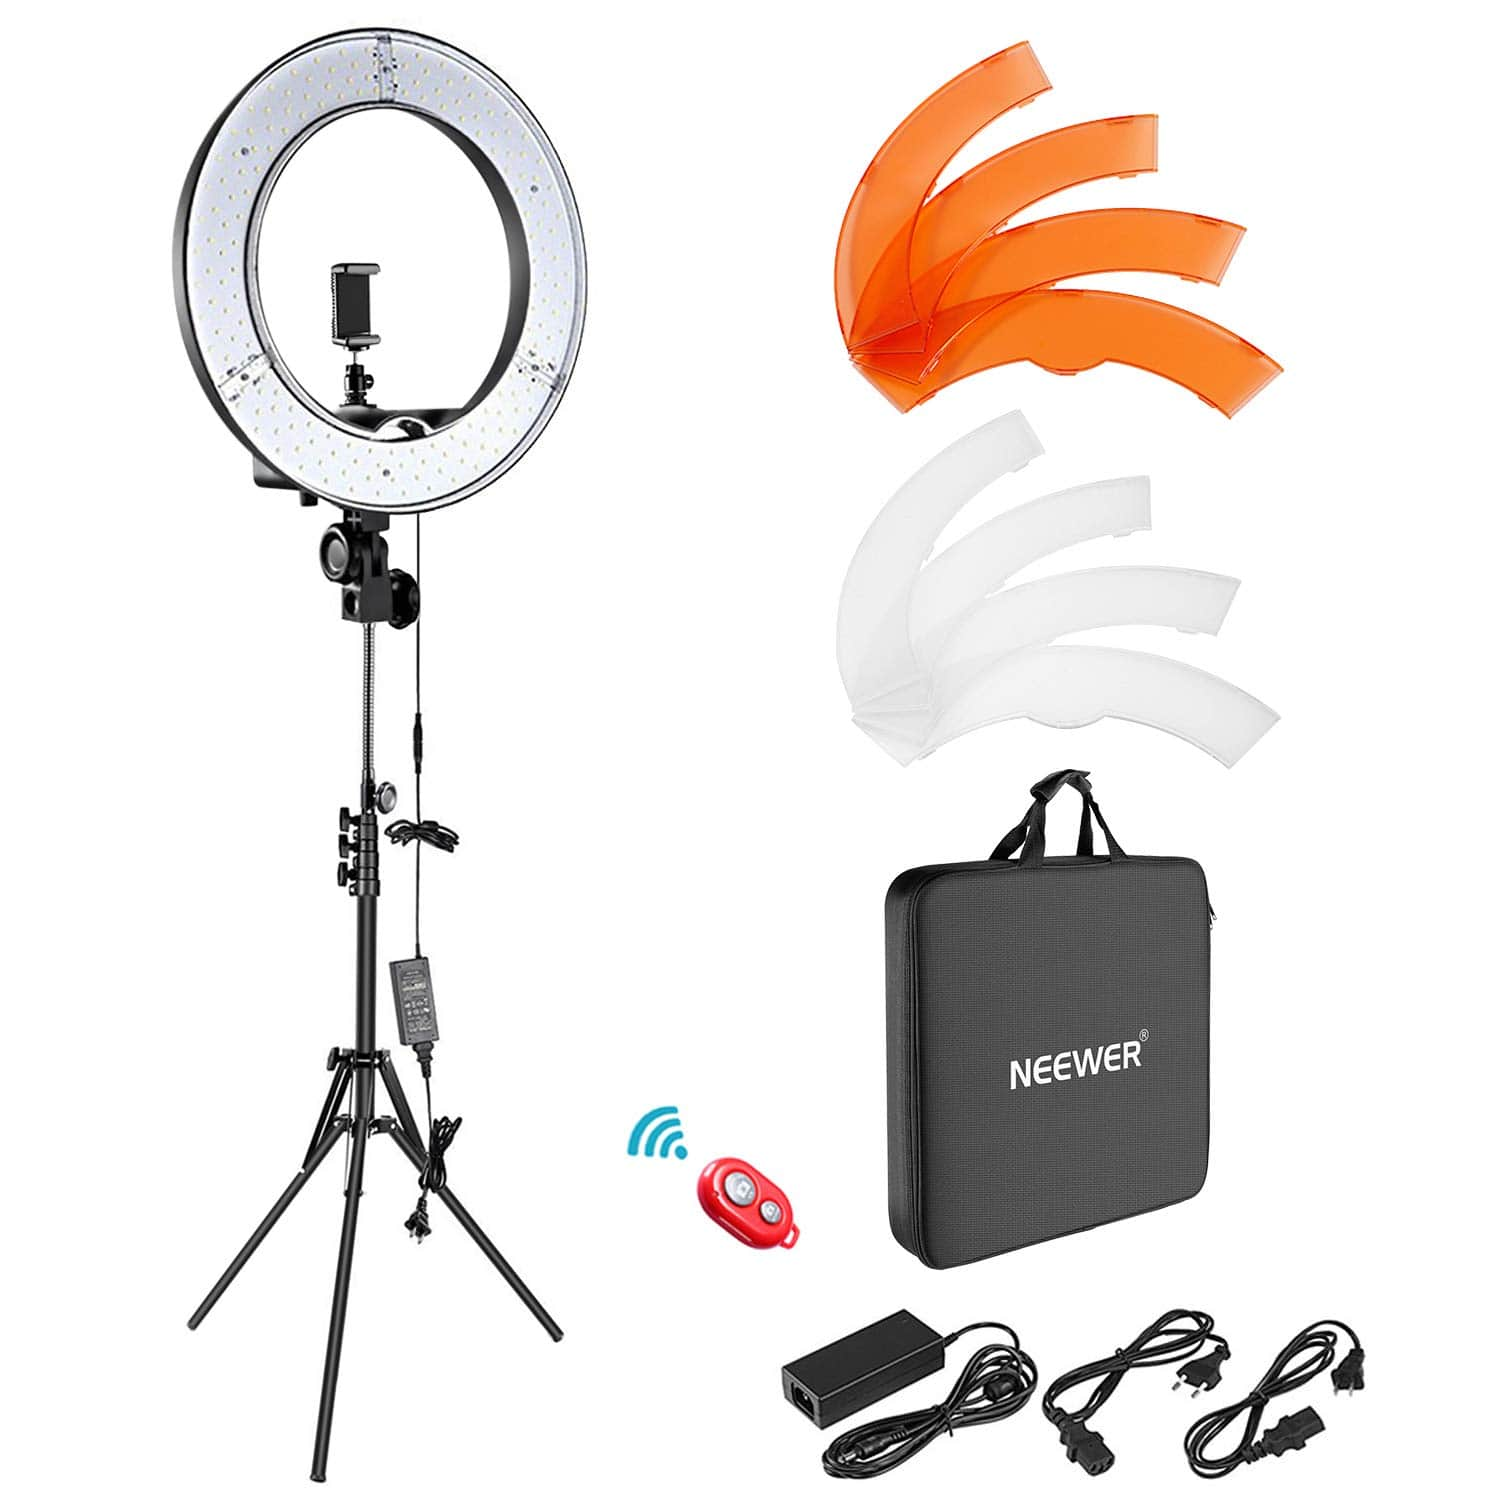 "[55% Off] Neewer Ring Light Kit:18""/48cm Outer 55W 5500K Dimmable LED Ring Light, Light Stand, Carrying Bag for $61"